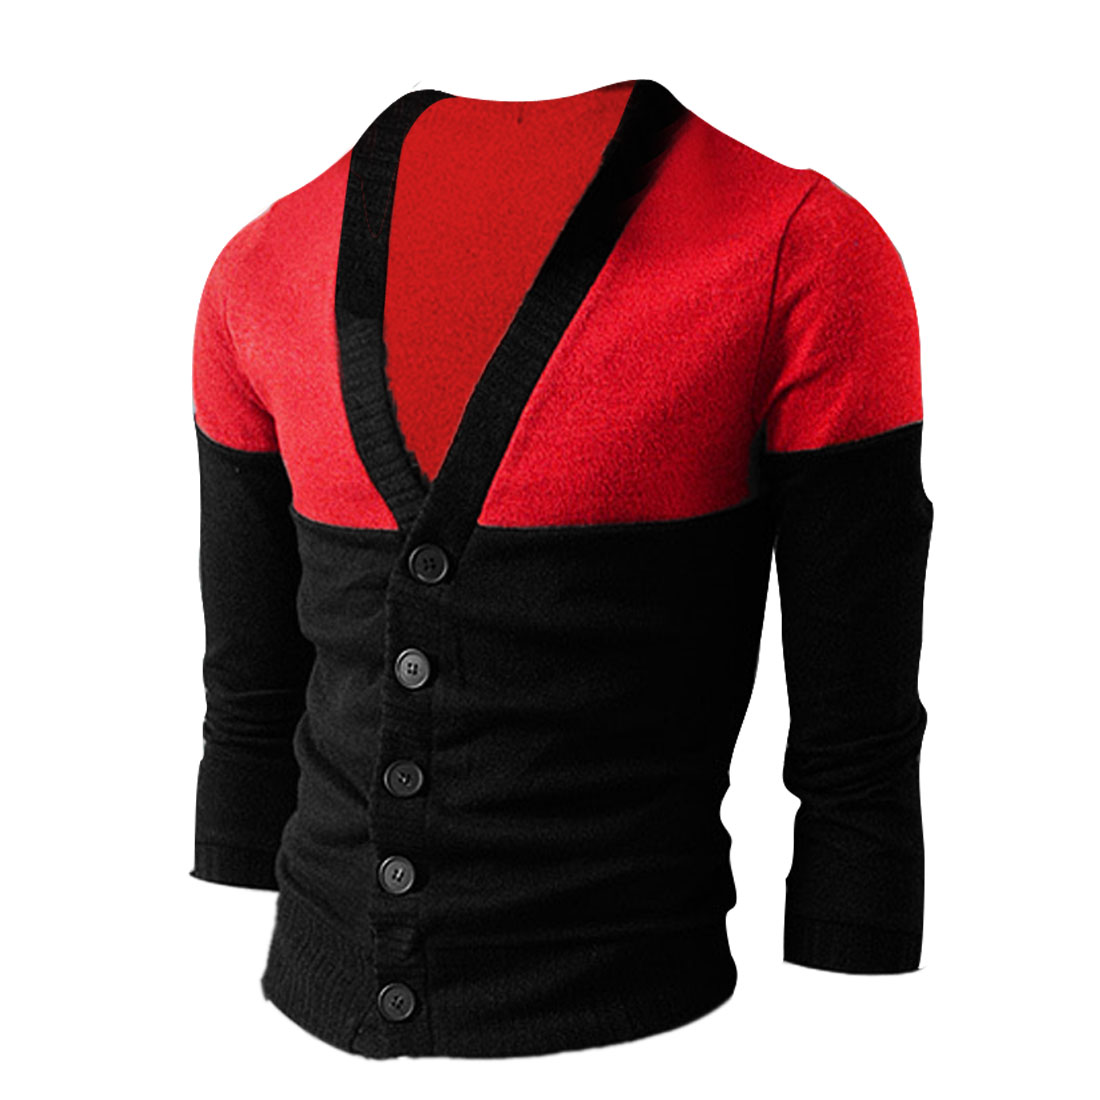 Men Chic Red Black Contrast Color Button Down Knitted Cardigan Coat M